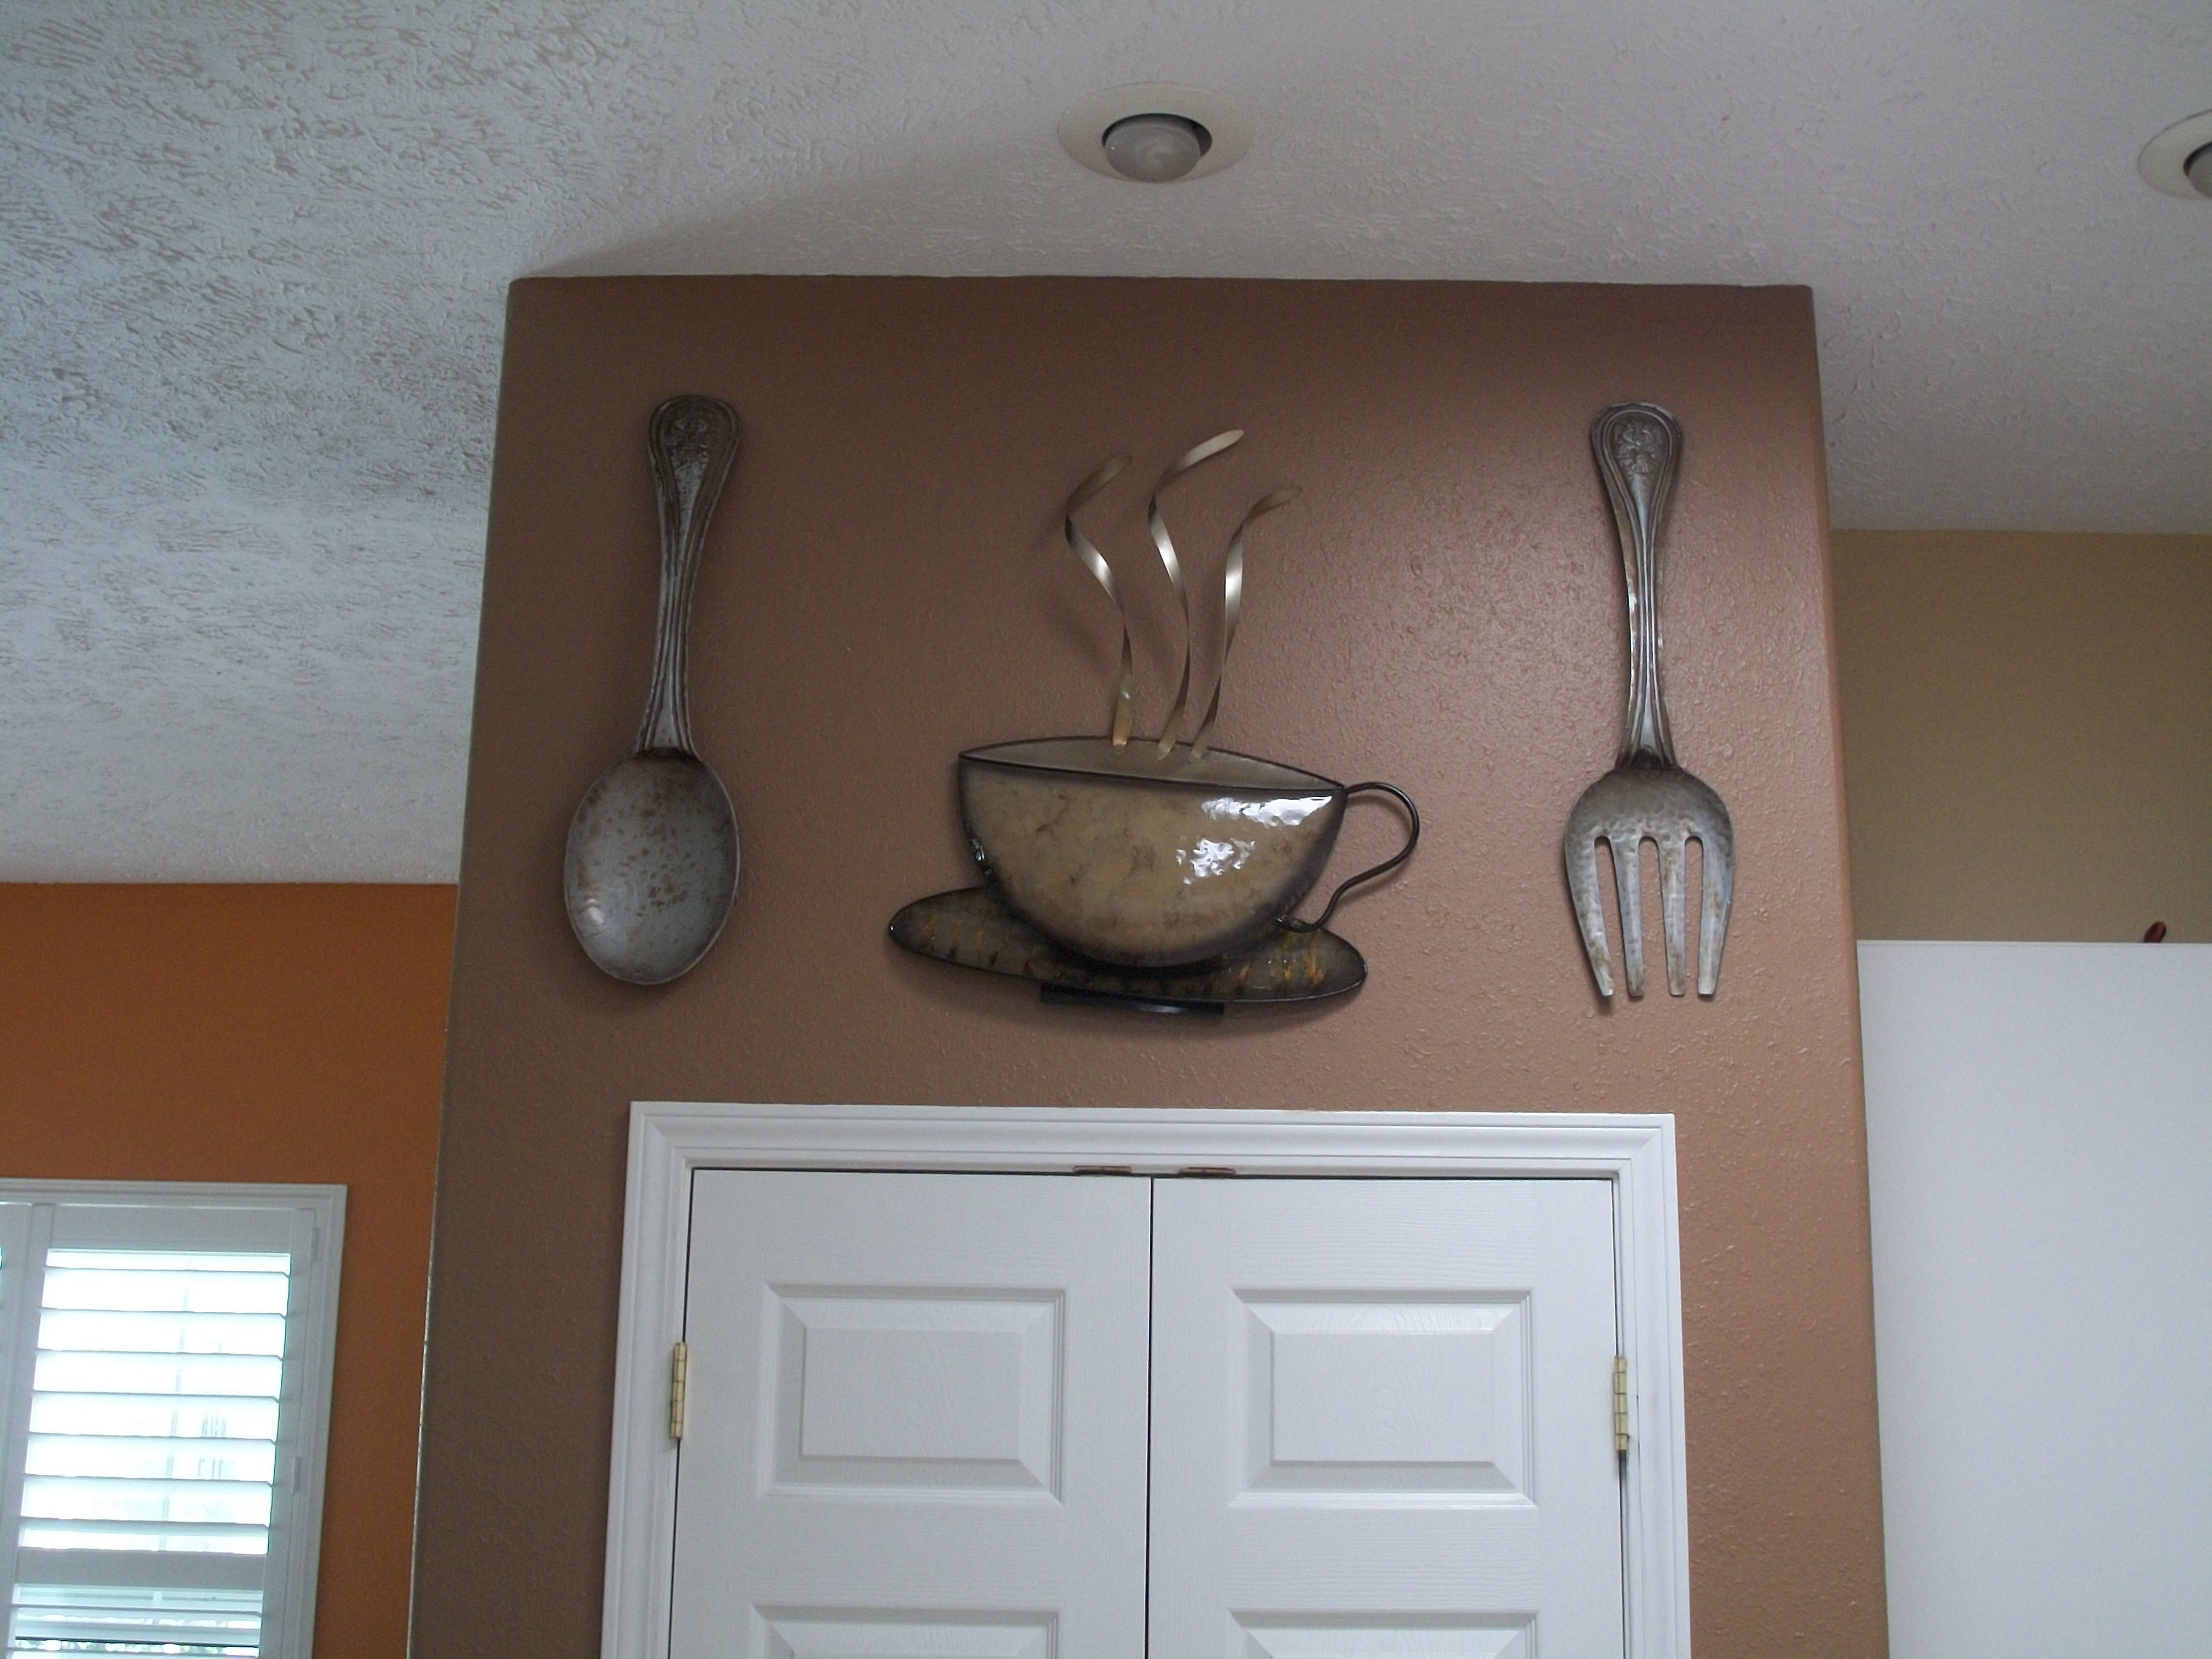 4+ Kirklands Wall Decor For Kitchen, Important Inspiraton! in